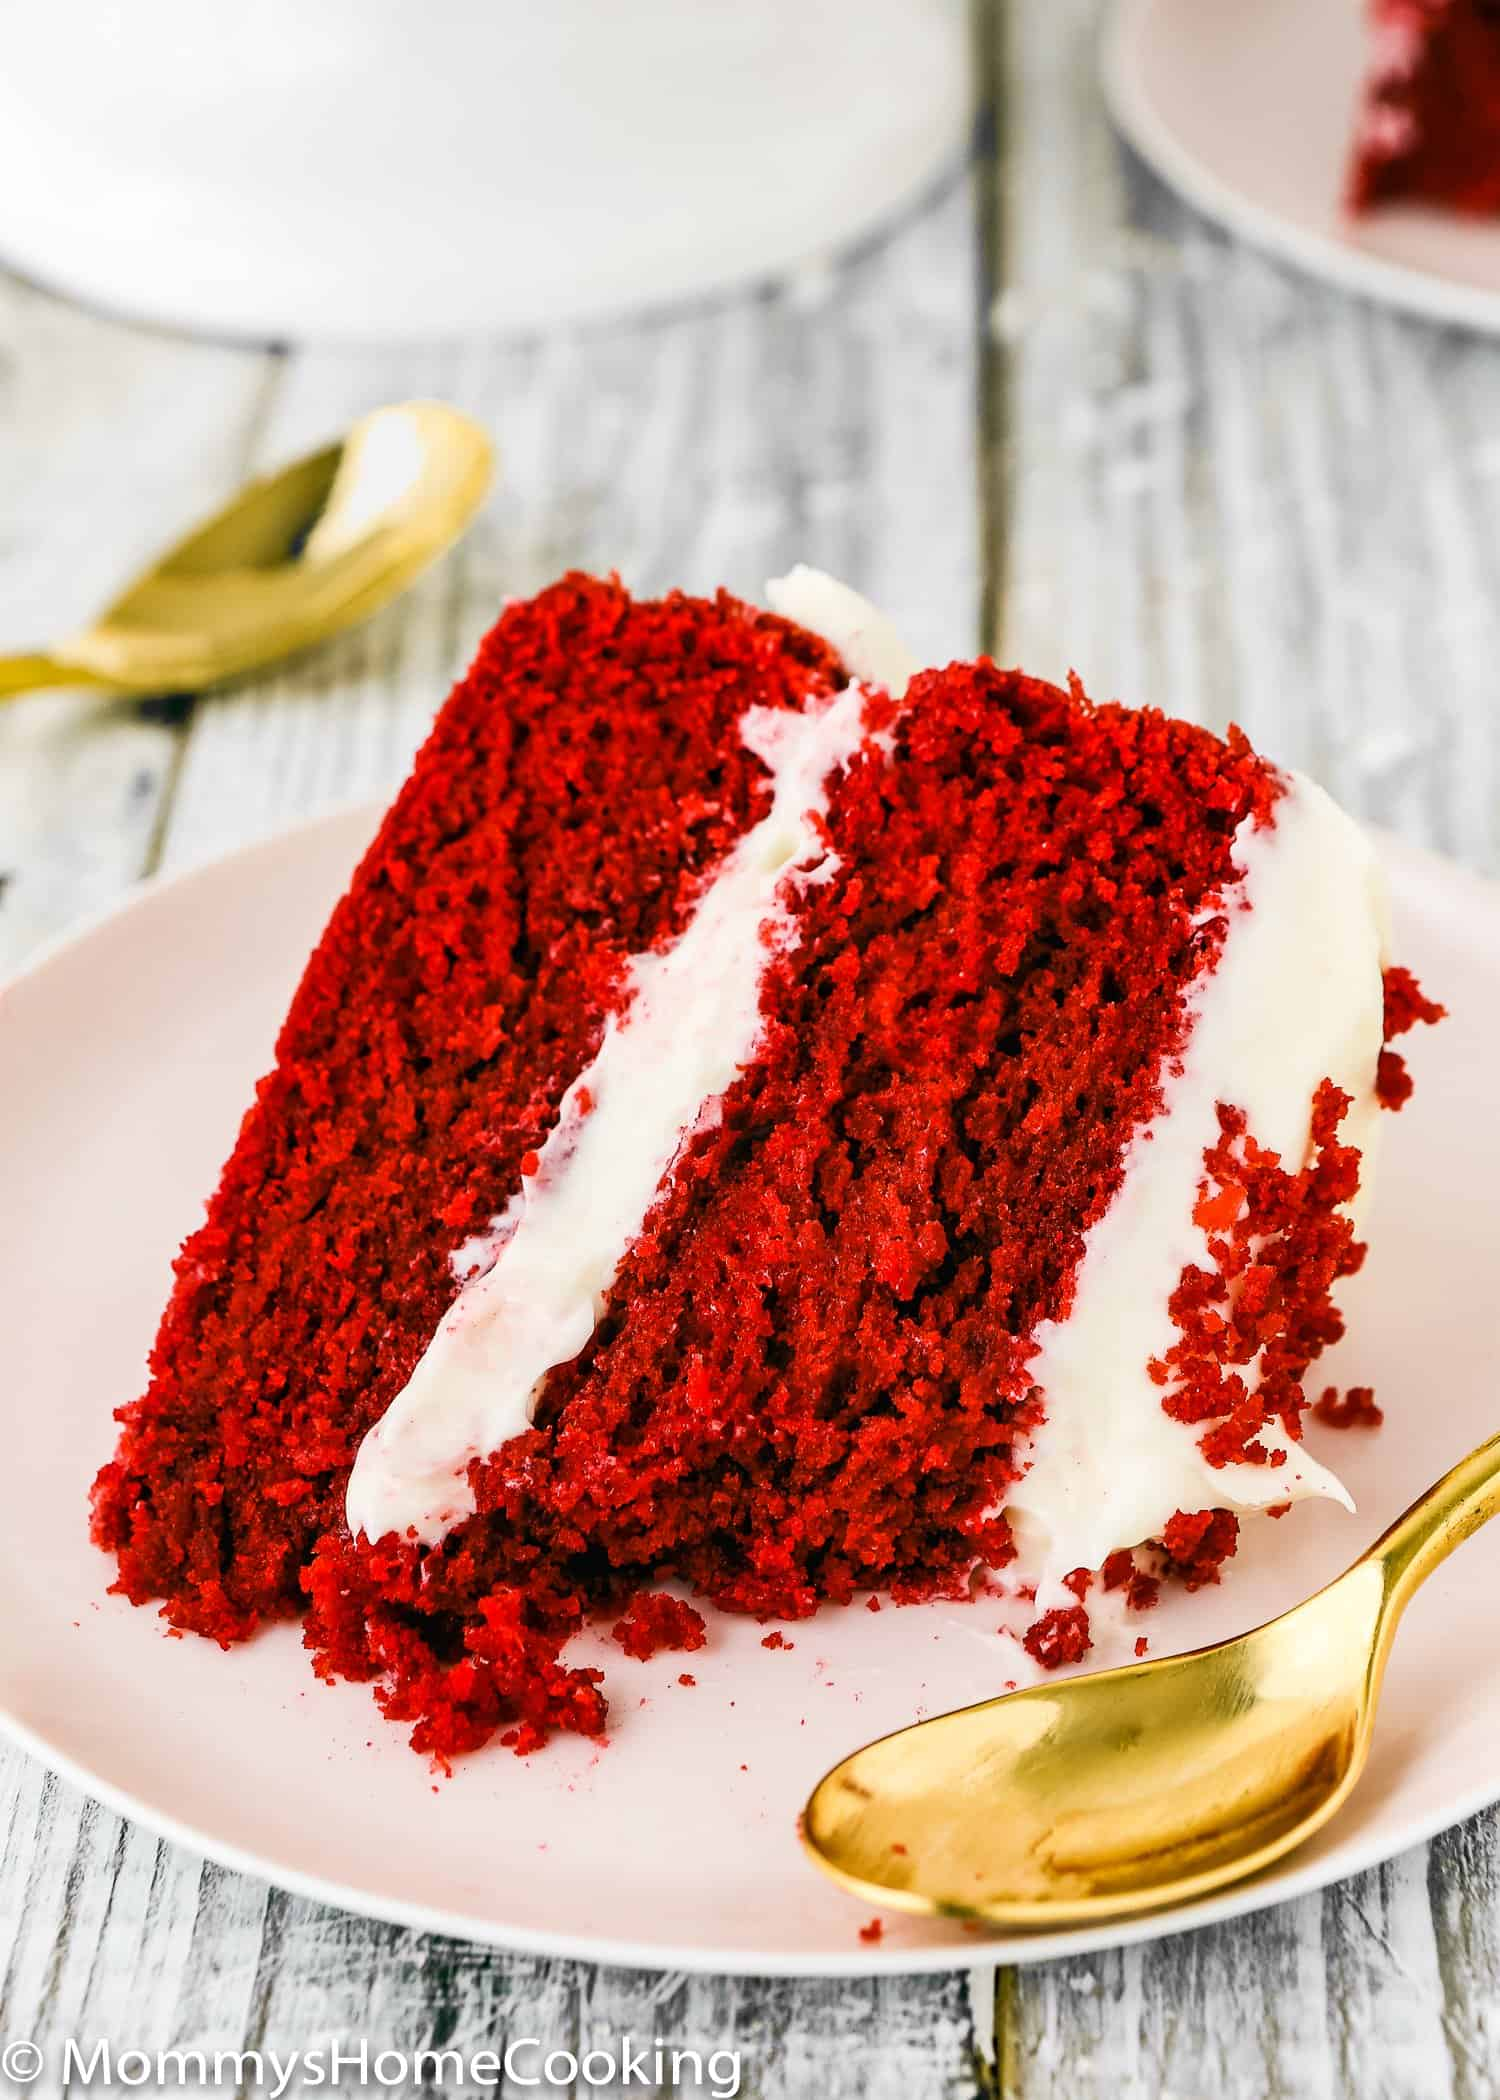 How To Make Red Velvet Cake With Self Rising Flour